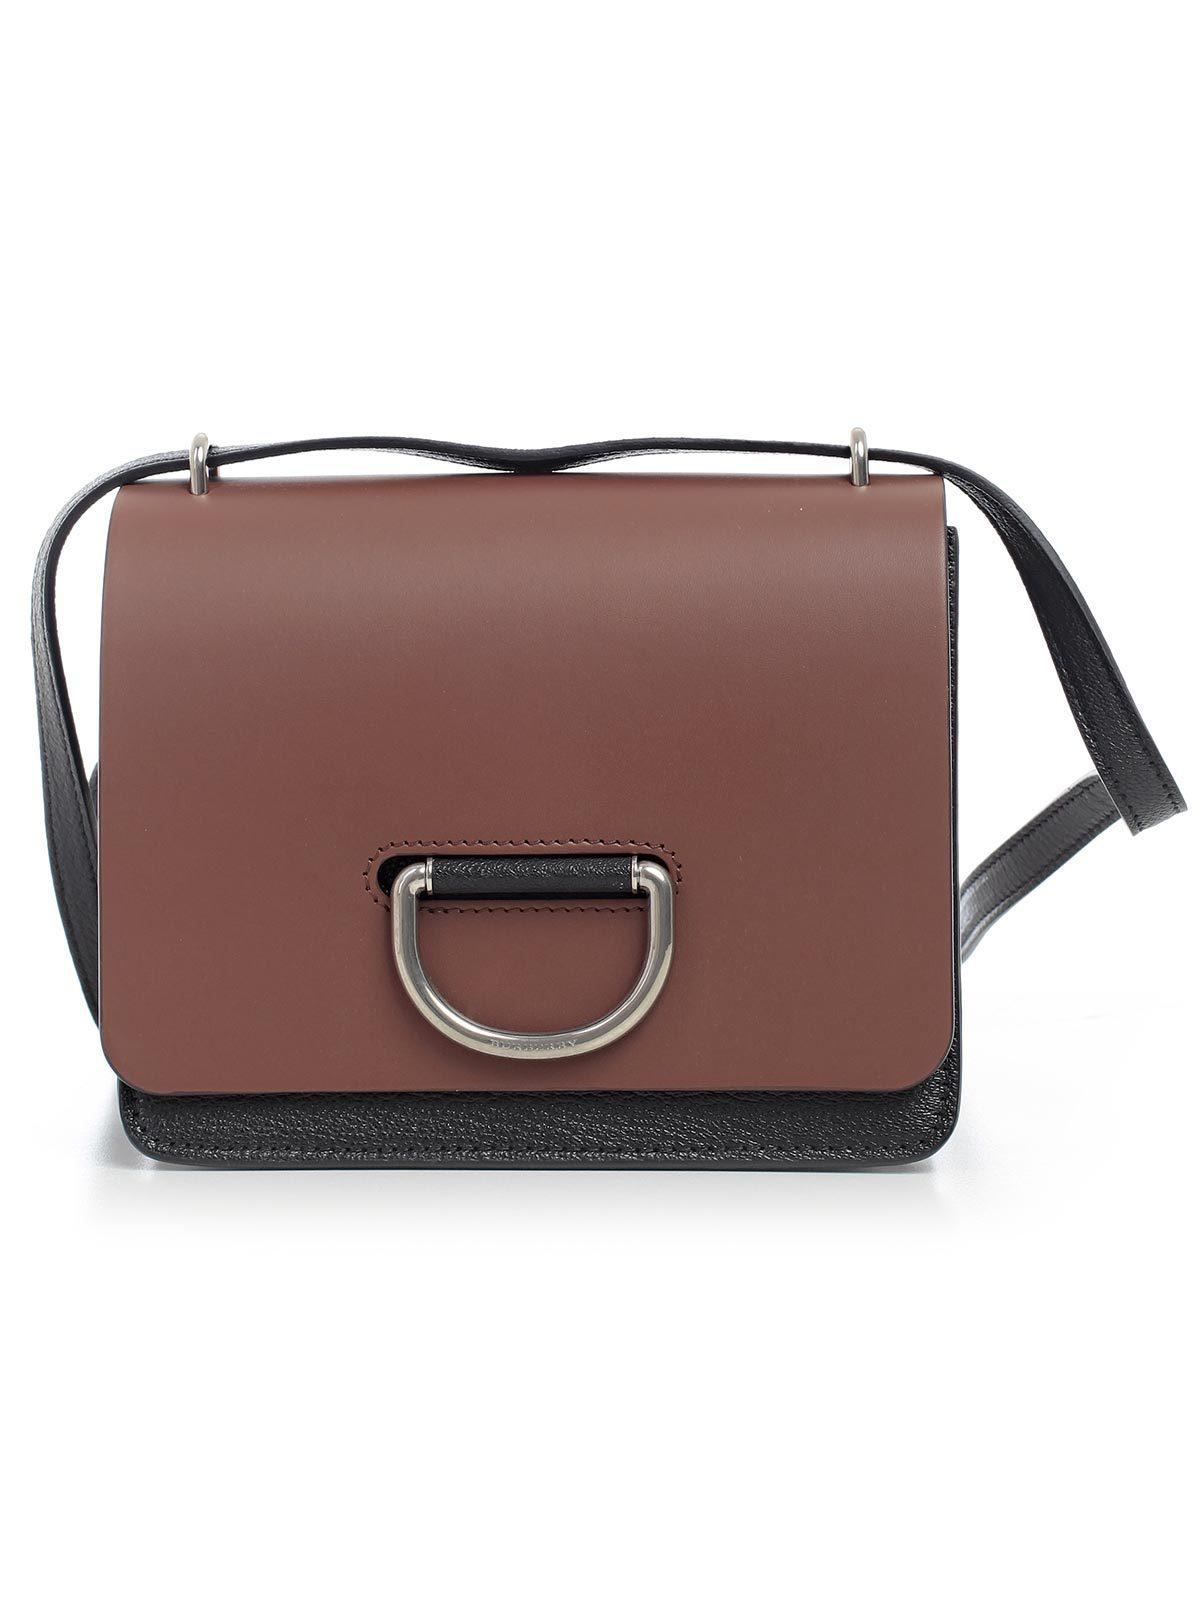 3b984fc39448 Lyst - Burberry D-ring Crossbody Bag in Brown